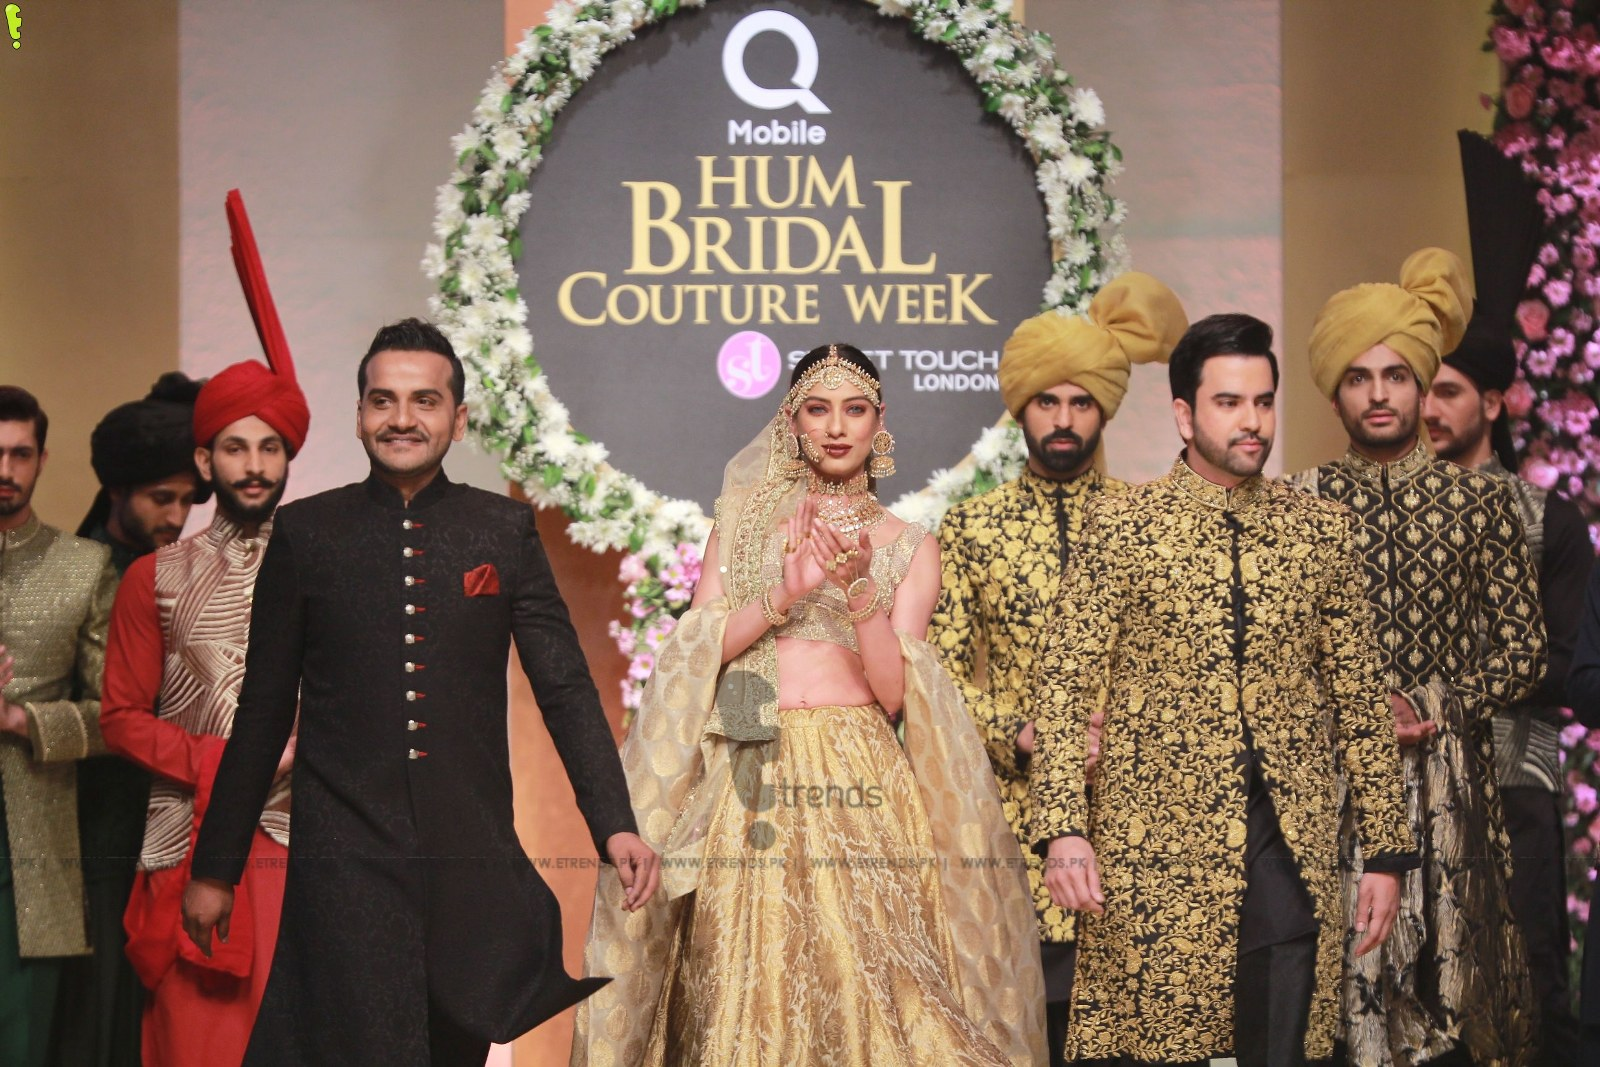 Emraan Rajput Collection at Hum Bridal Couture Week 2017